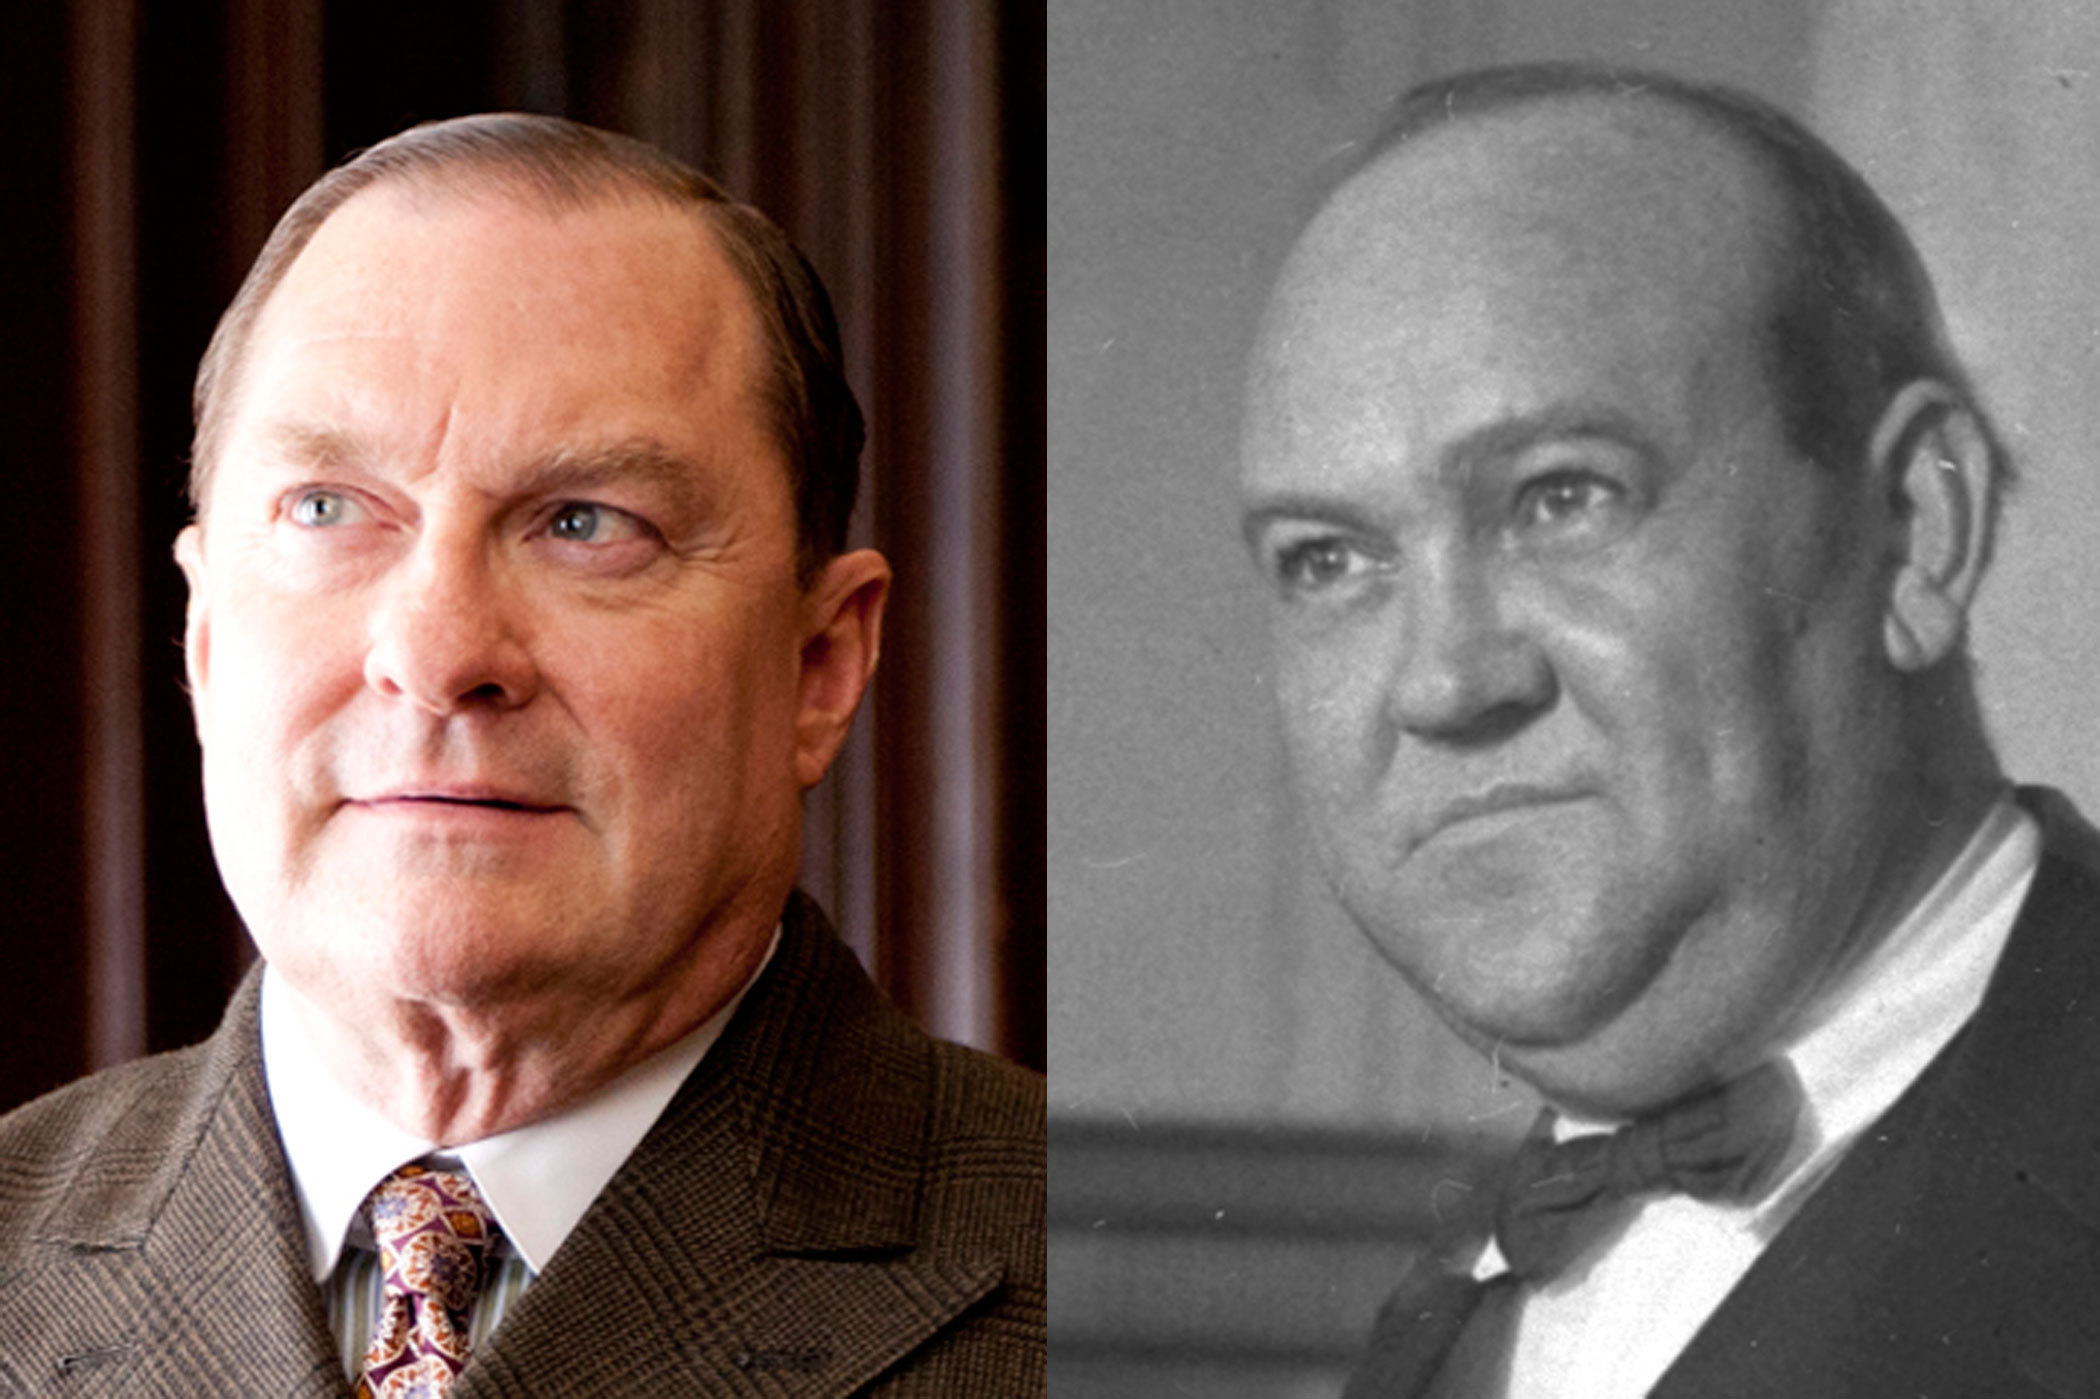 Gaston Means:                               Boardwalk Empire's Gaston Means (played by Stephen Root) may have been ordered to kill associate Jess Smith by Harry Daugherty, but in real life, there is no reason to think this order ever happened. And yet, Means was a skilled con man who was eventually found guilty of grand larceny.